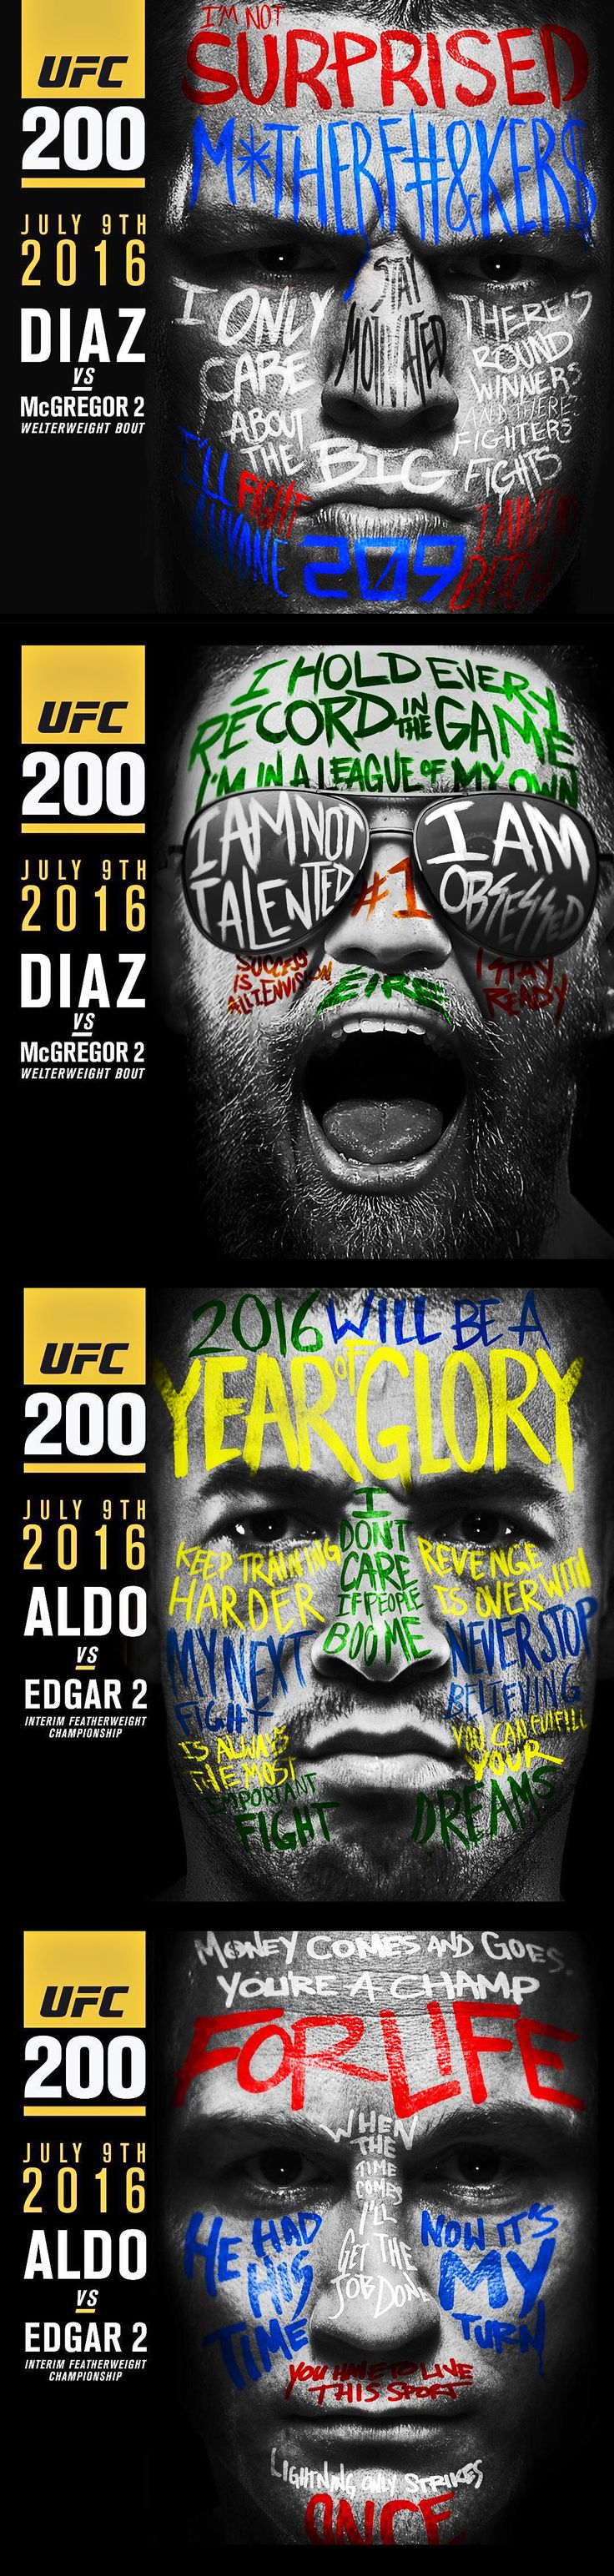 Nate Diaz vs Conor McGregor / Jose Aldo vs Frankie Edgar #UFC200 fight promo : if you love #MMA, you'll love the #UFC & #MixedMartialArts inspired fashion at CageCult: http://cagecult.com/mma